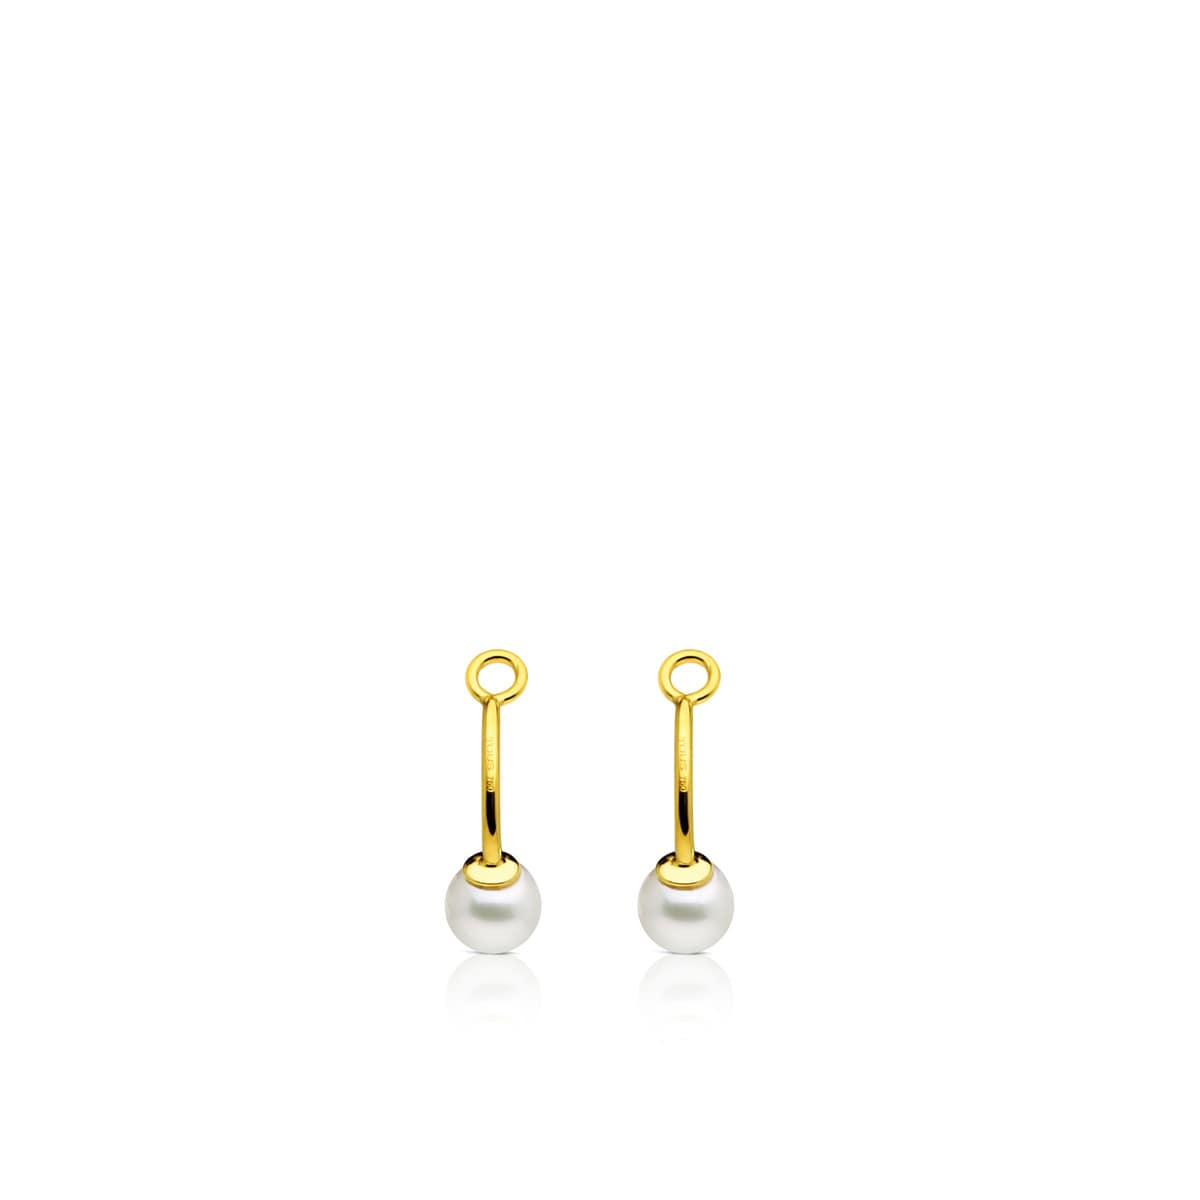 Gold TOUS Pearl Earrings extension Pack with Pearl